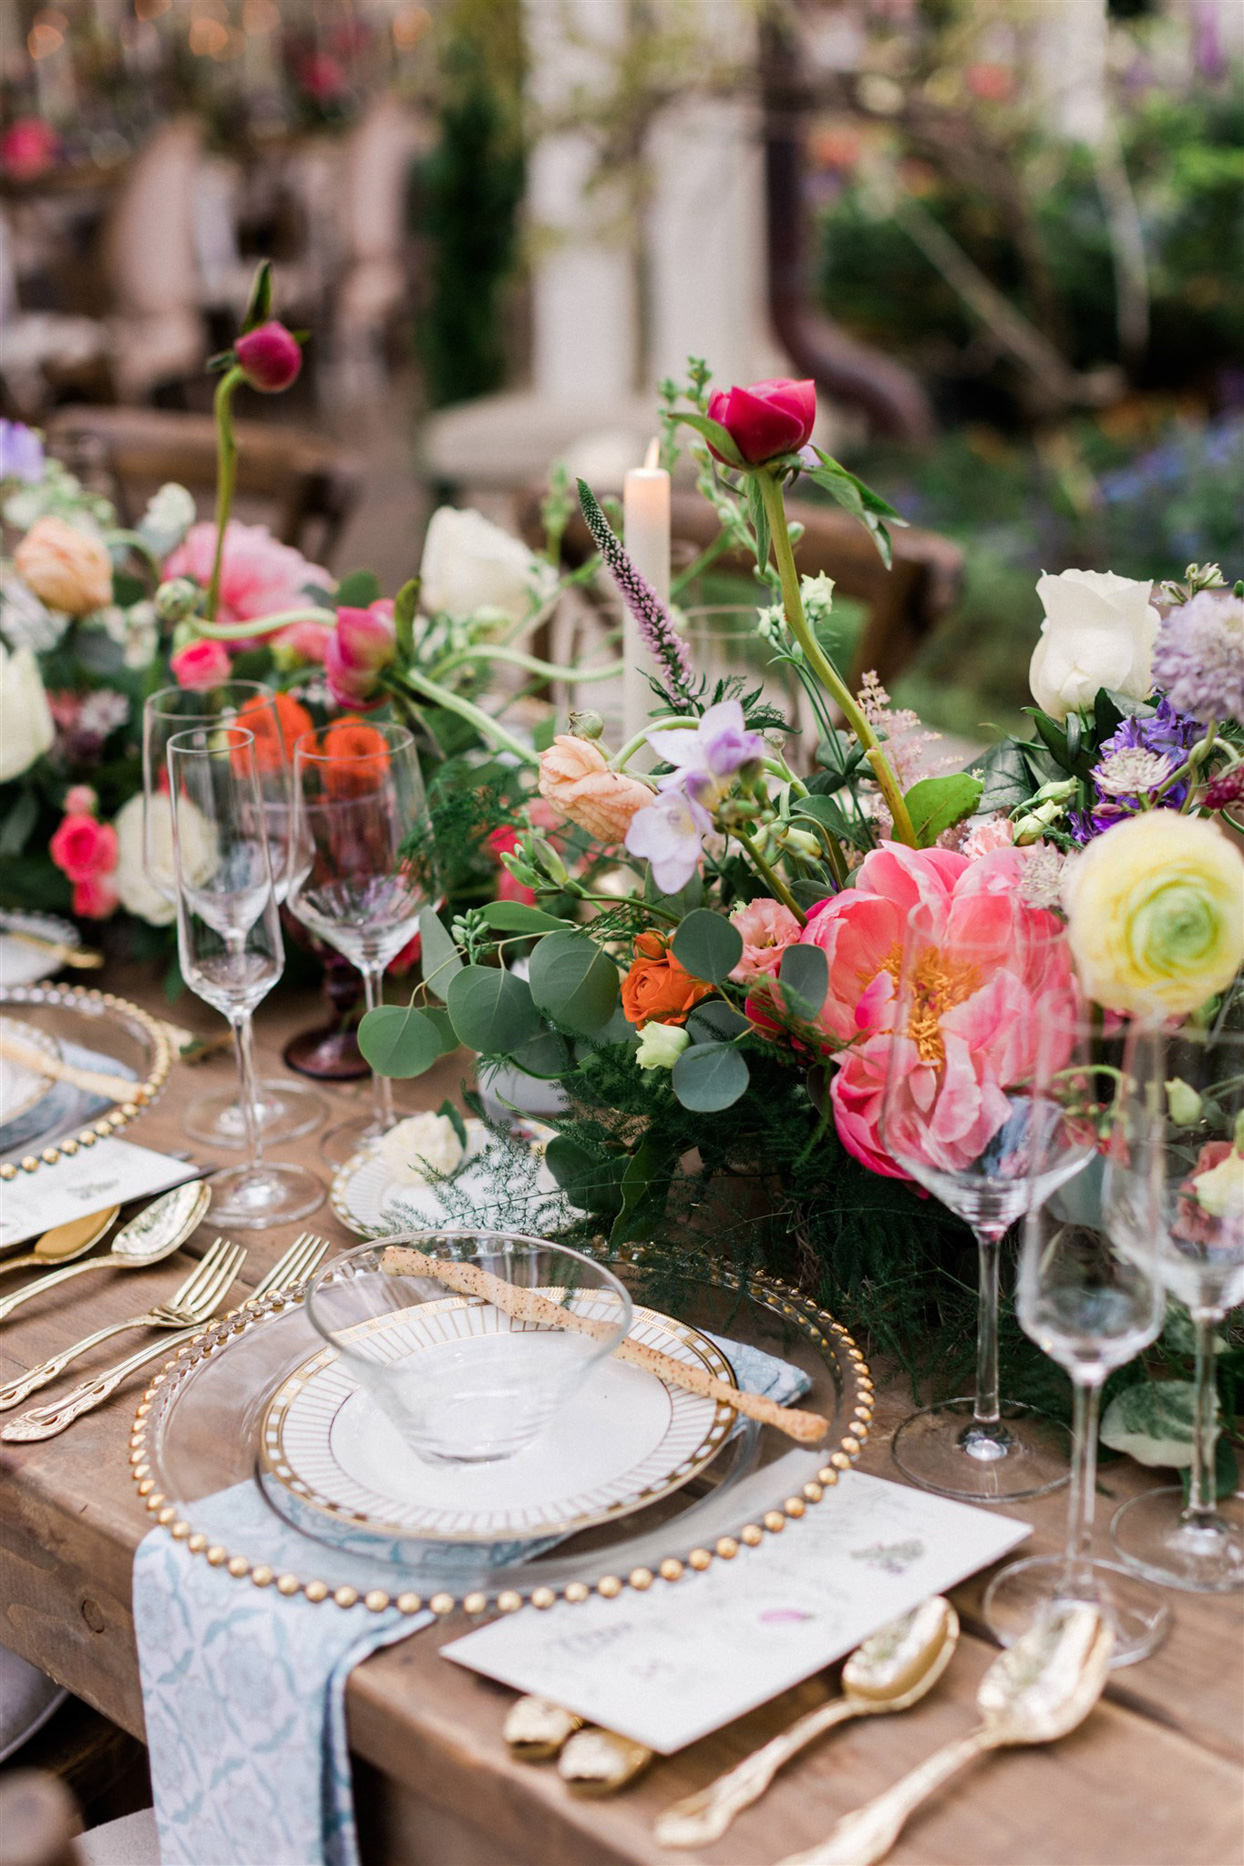 whimsical dinner table setting with gold accents